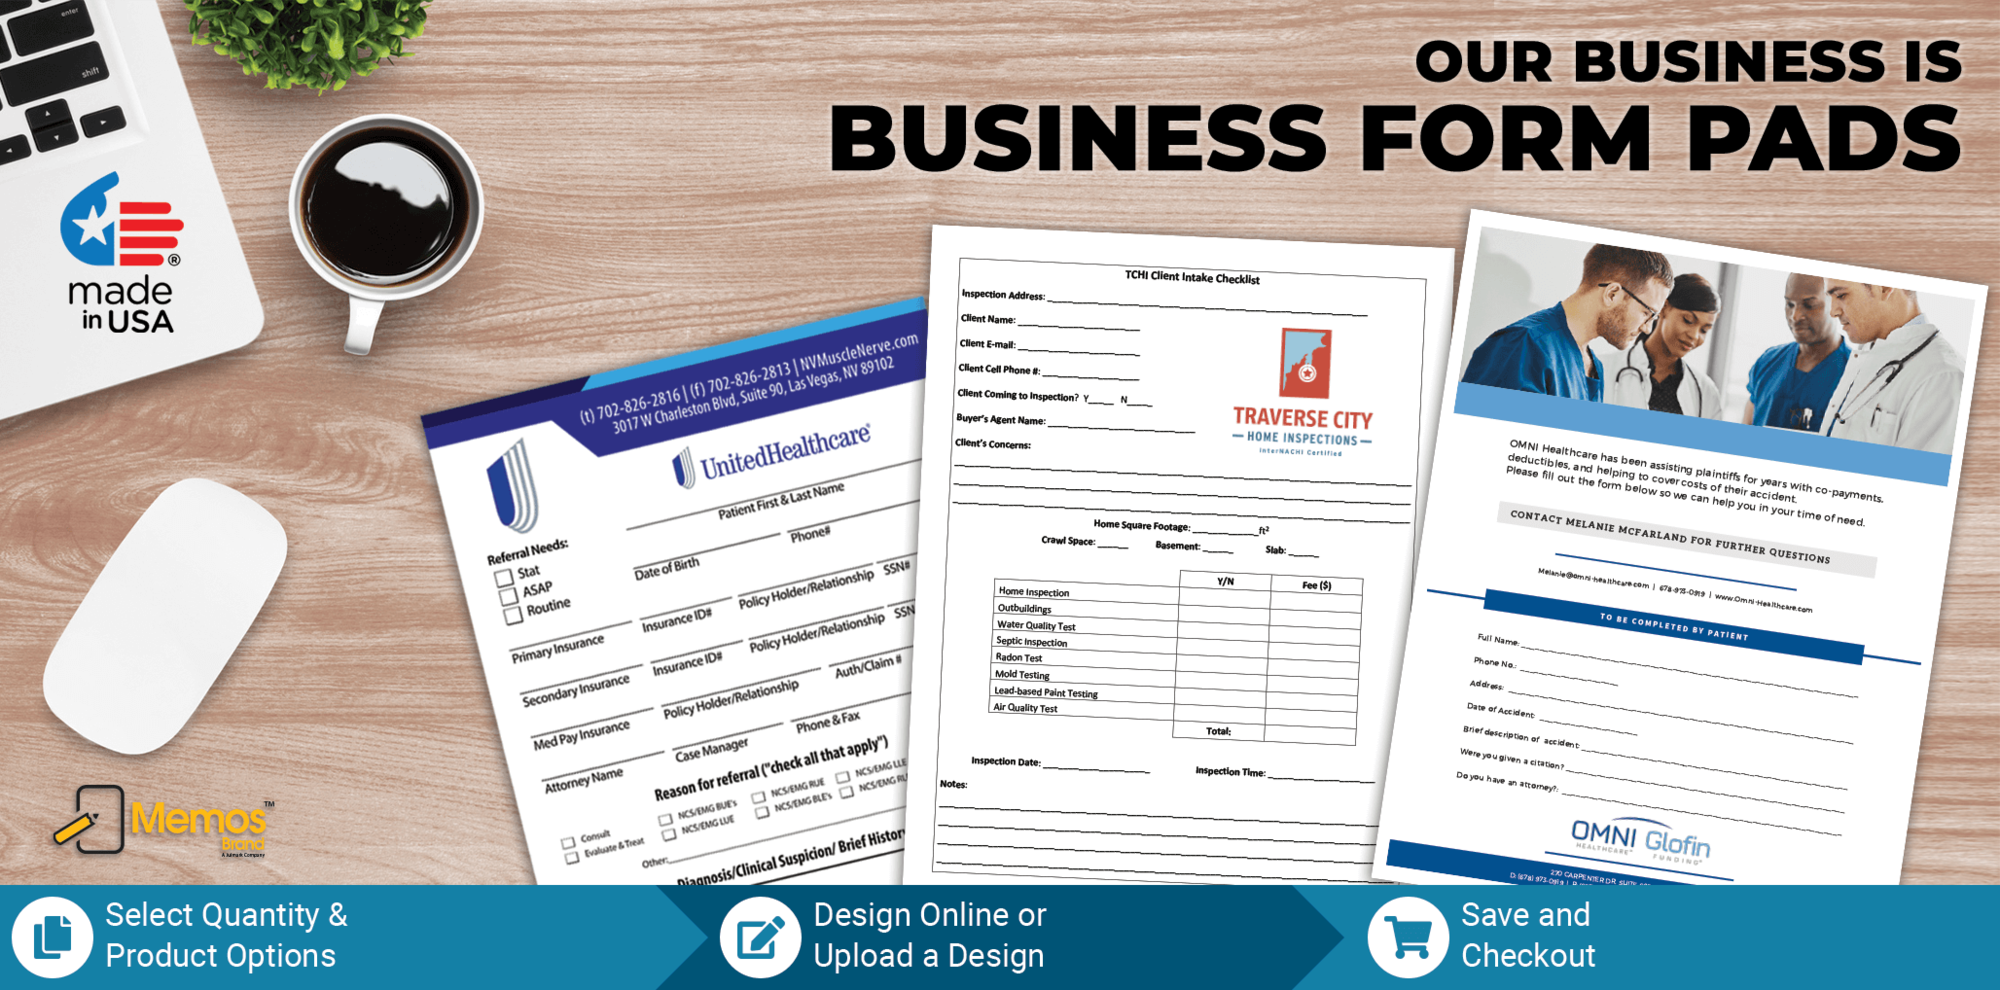 https://printpps.com/images/products_gallery_images/Banner_8_5x11-BusinessForm-Pads_ProdFeat_Cover17.png